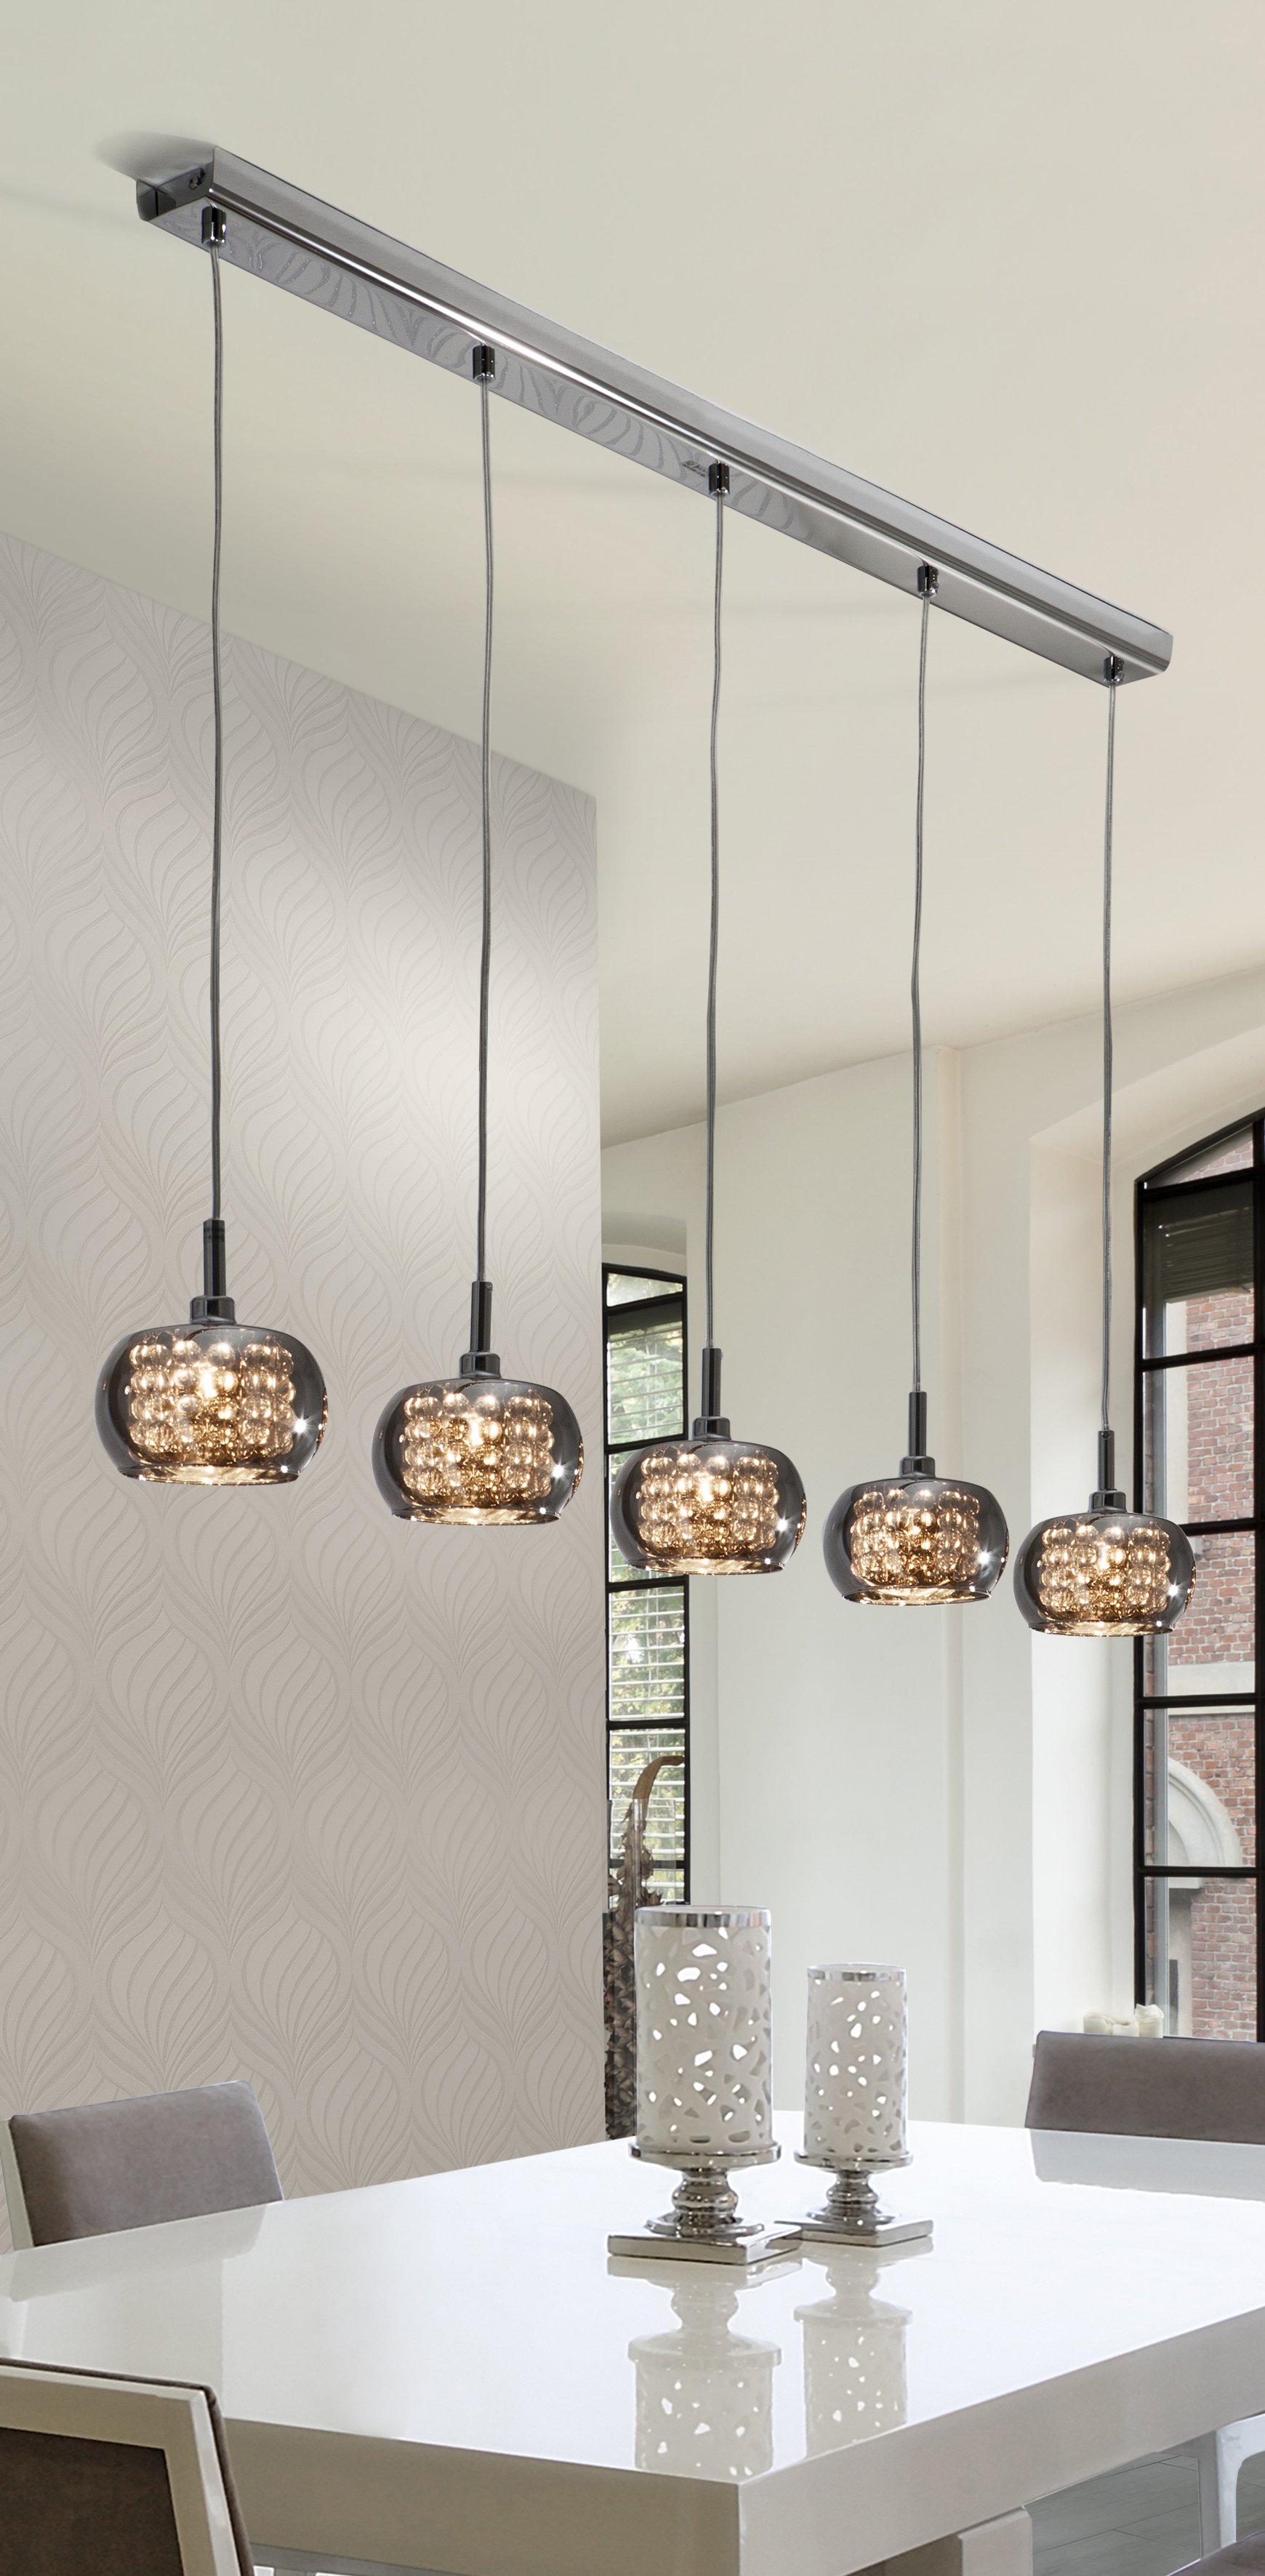 Arian 5 Light Kitchen Island Pendant | Décor: Lights & Lamps In Neal 5 Light Kitchen Island Teardrop Pendants (View 7 of 30)